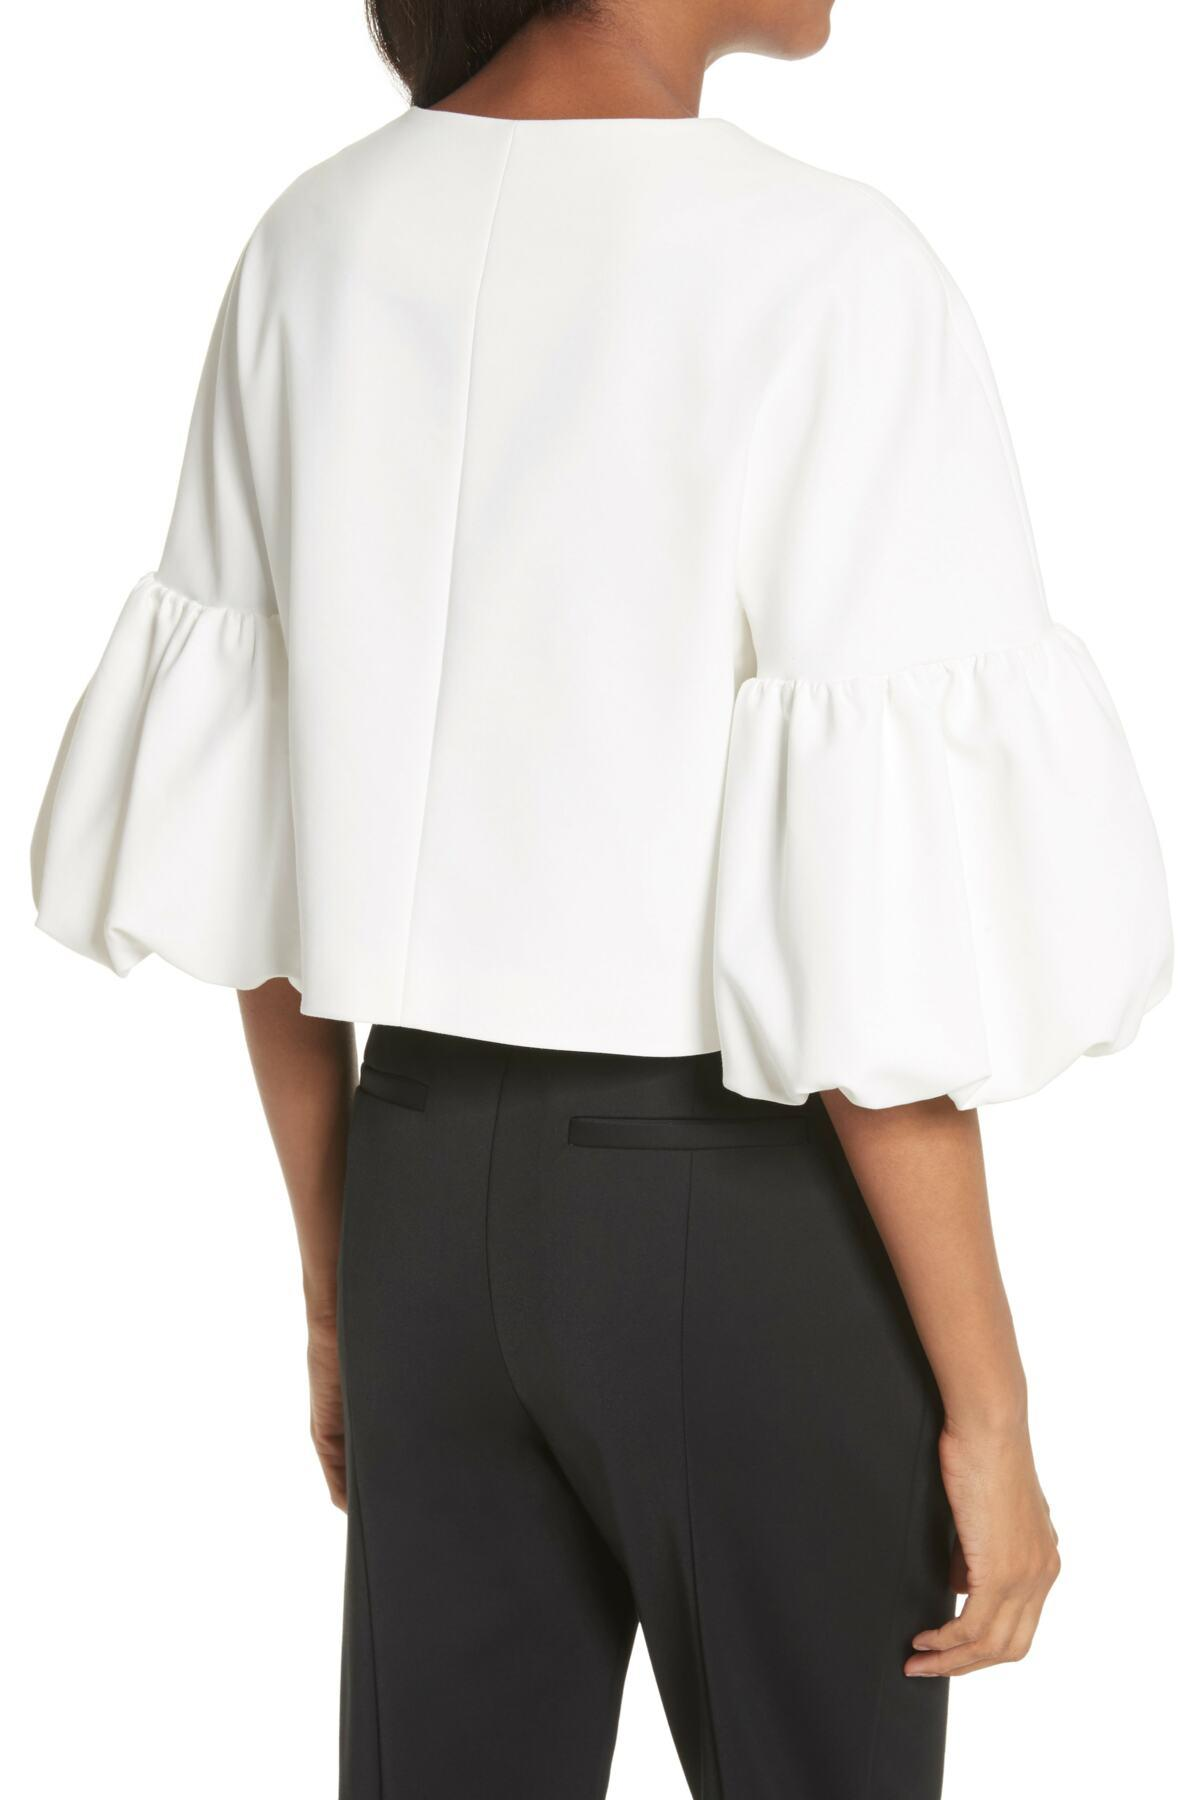 In Balloon White Top Tibi Lyst Sleeve vPnw8Nym0O